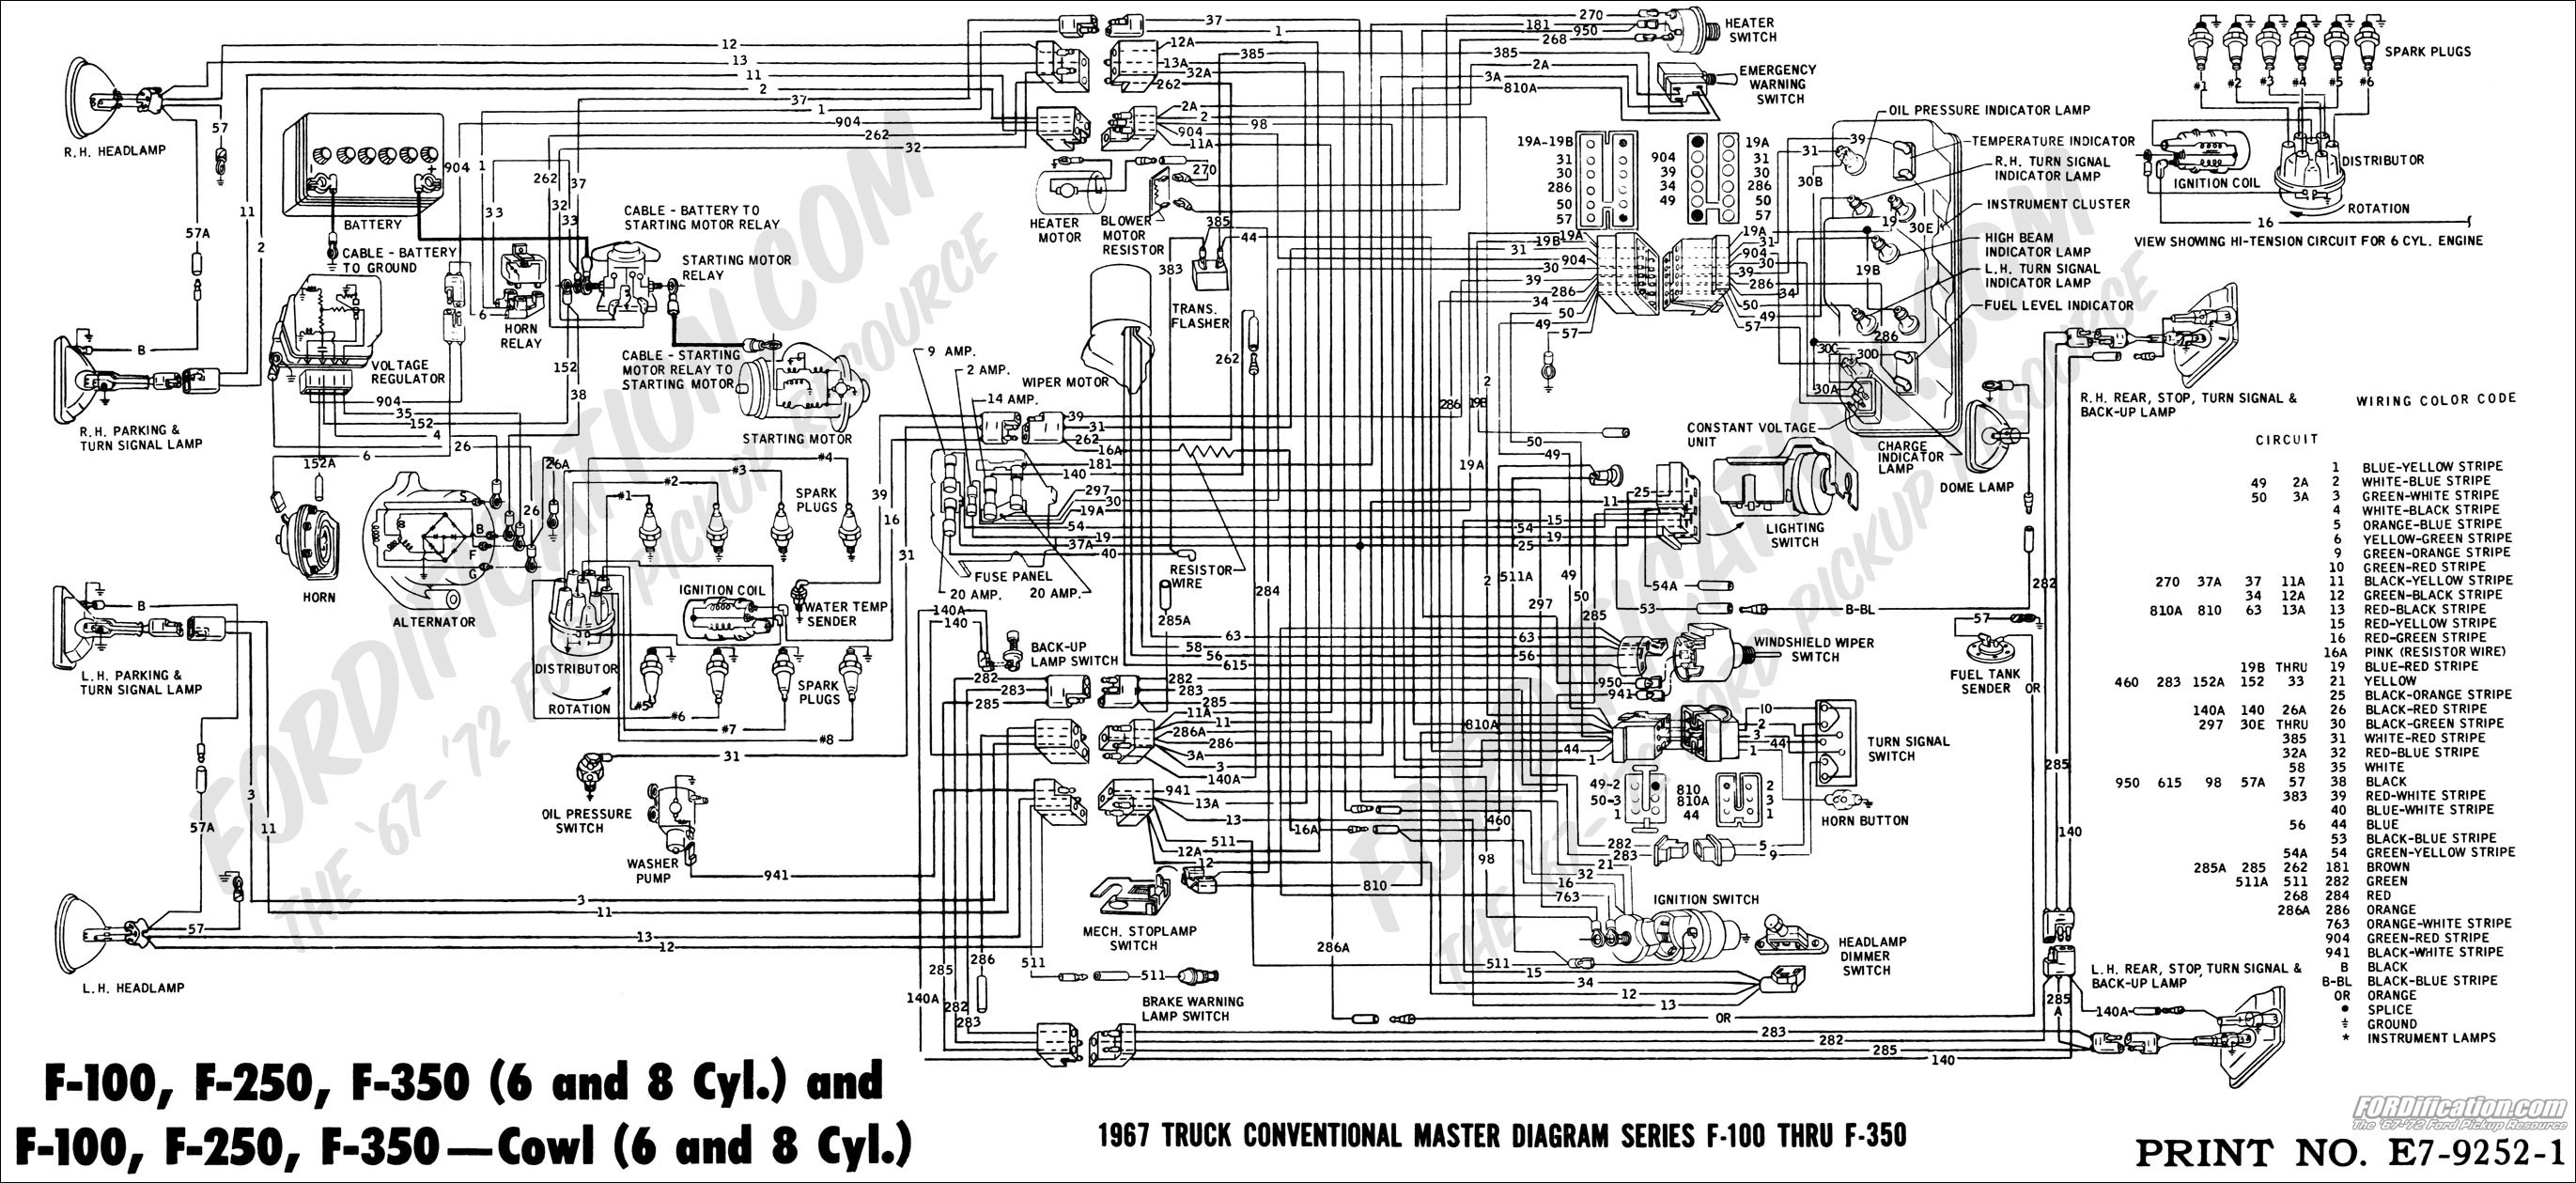 1985 Ford F 250 Fuse Box Diagram - DIY Wiring Diagrams •